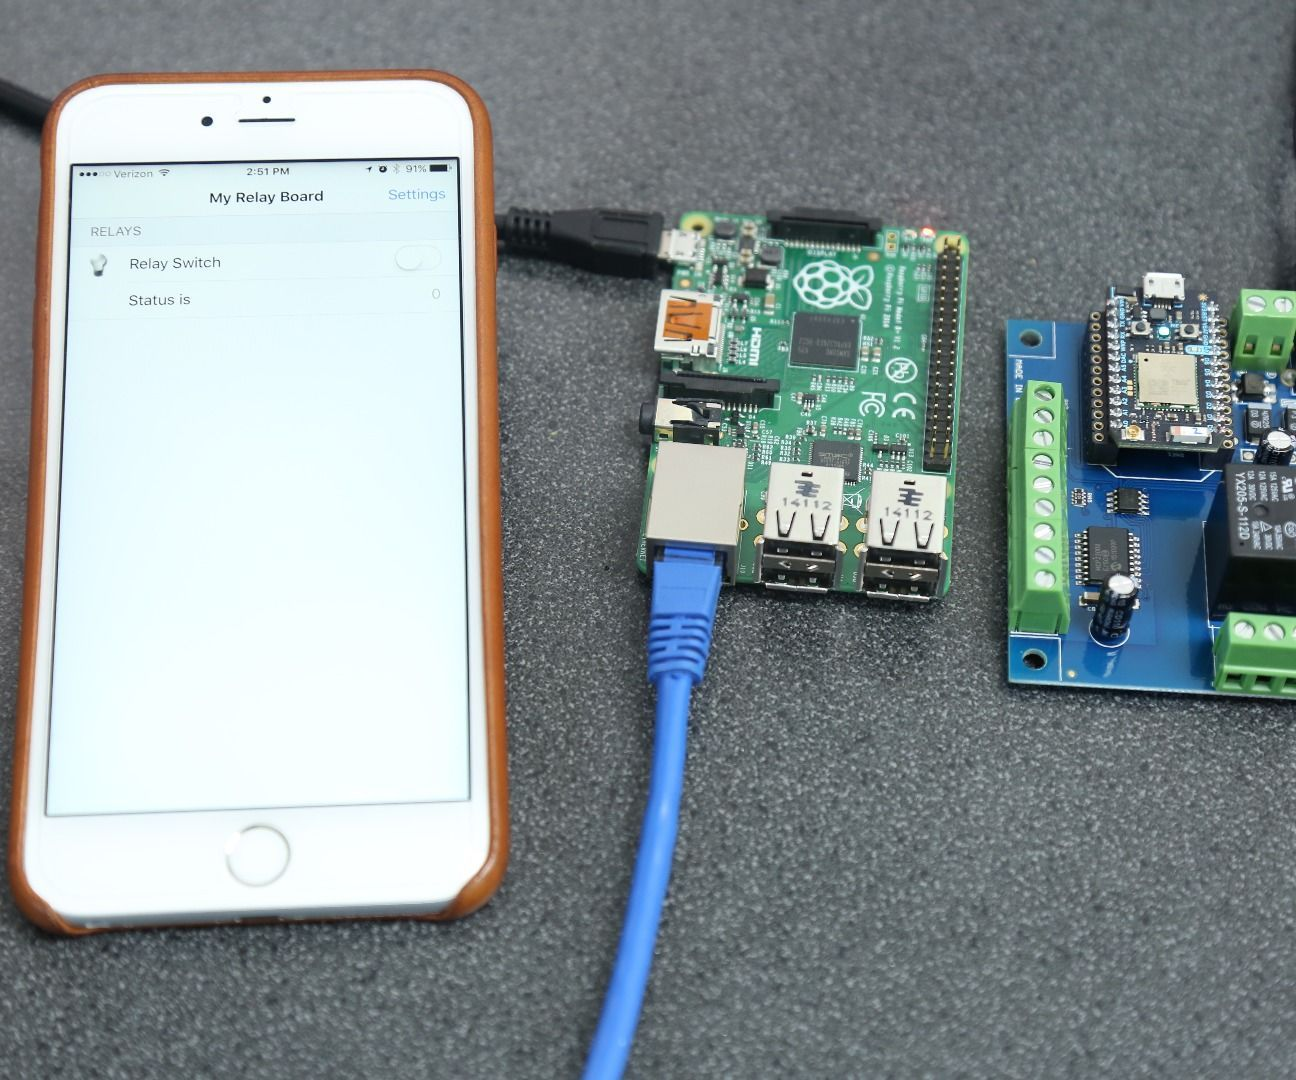 OpenHab on Pi Controlling Particle Photon Relay | Tech | Home